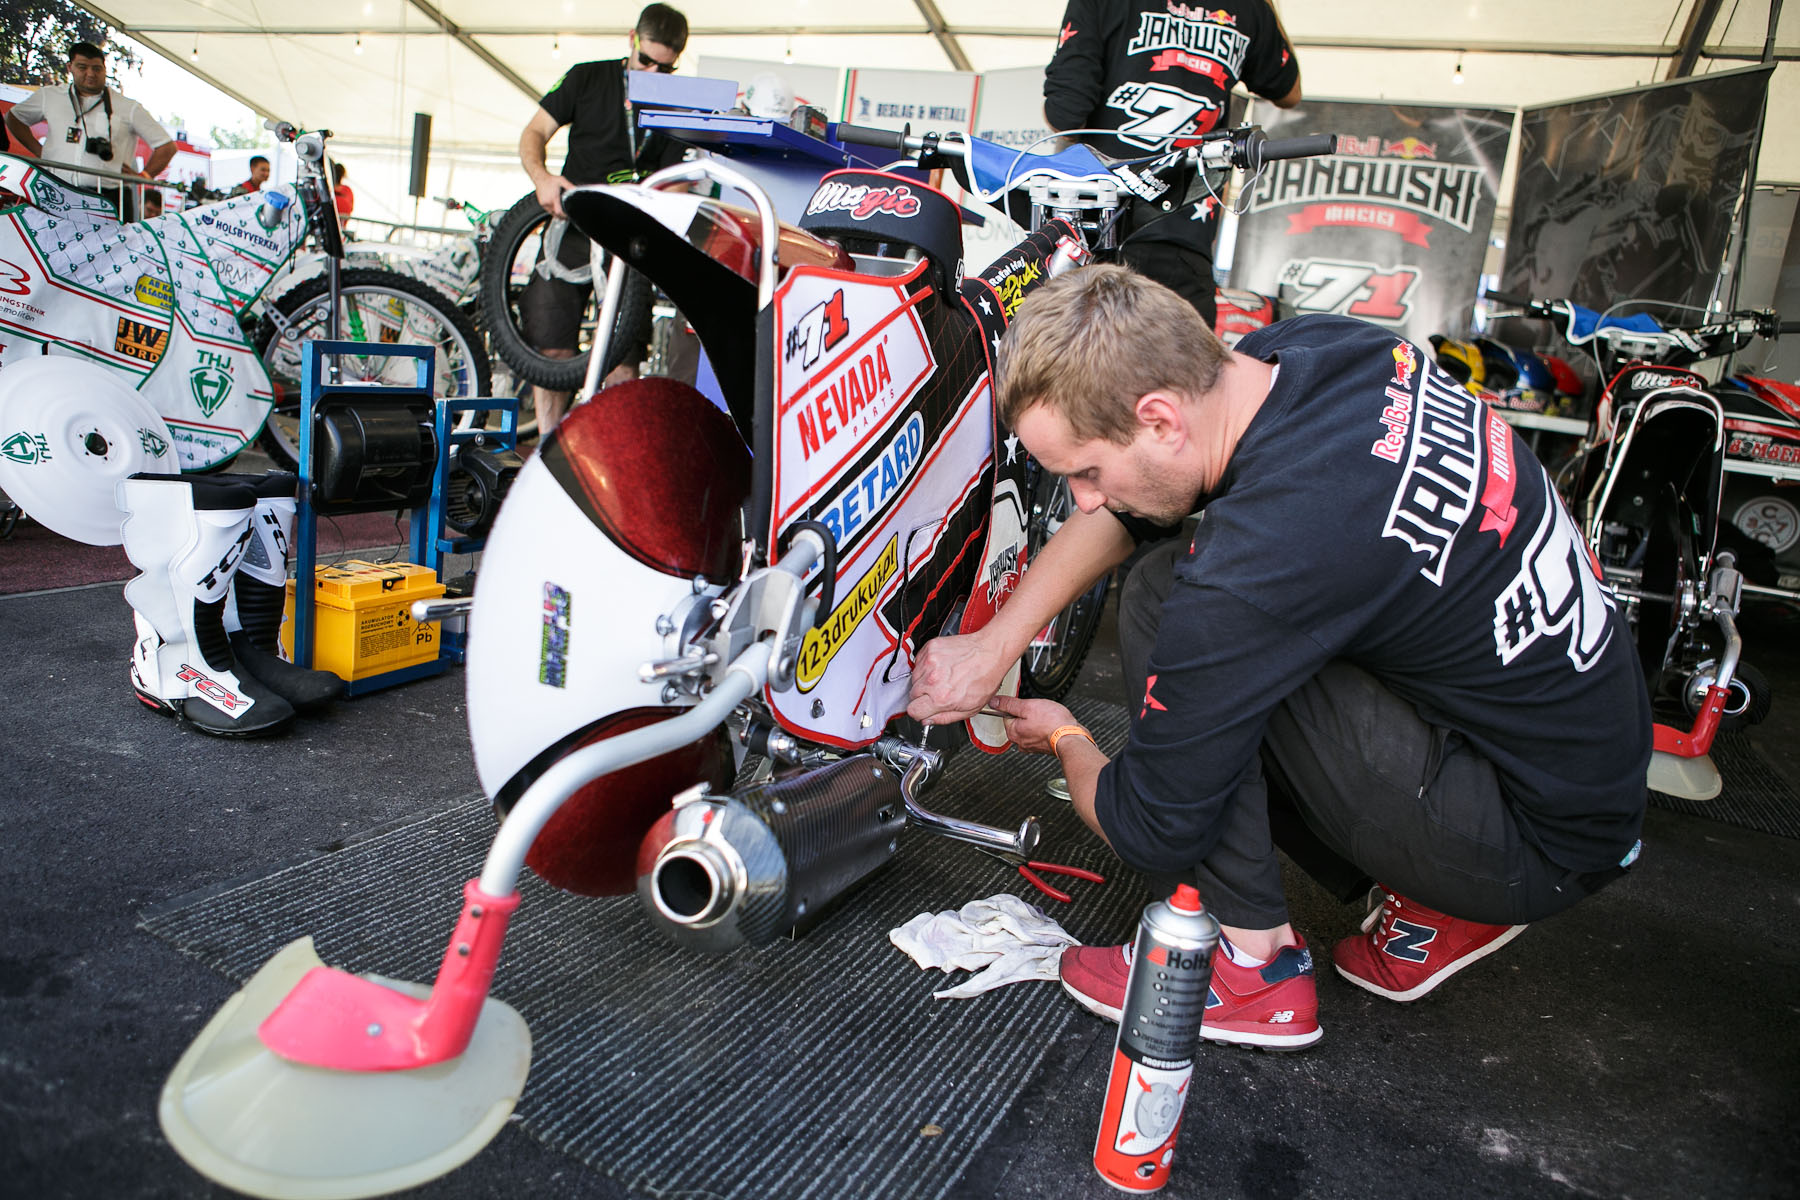 Poland\'s Maciej Janowski\'s technical team prepares the motorcycle before the Mitas Slovenian FIM Speedway Grand Prix at Matija Gubec Stadium in Krsko, Slovenia, Sep. 12, 2015.